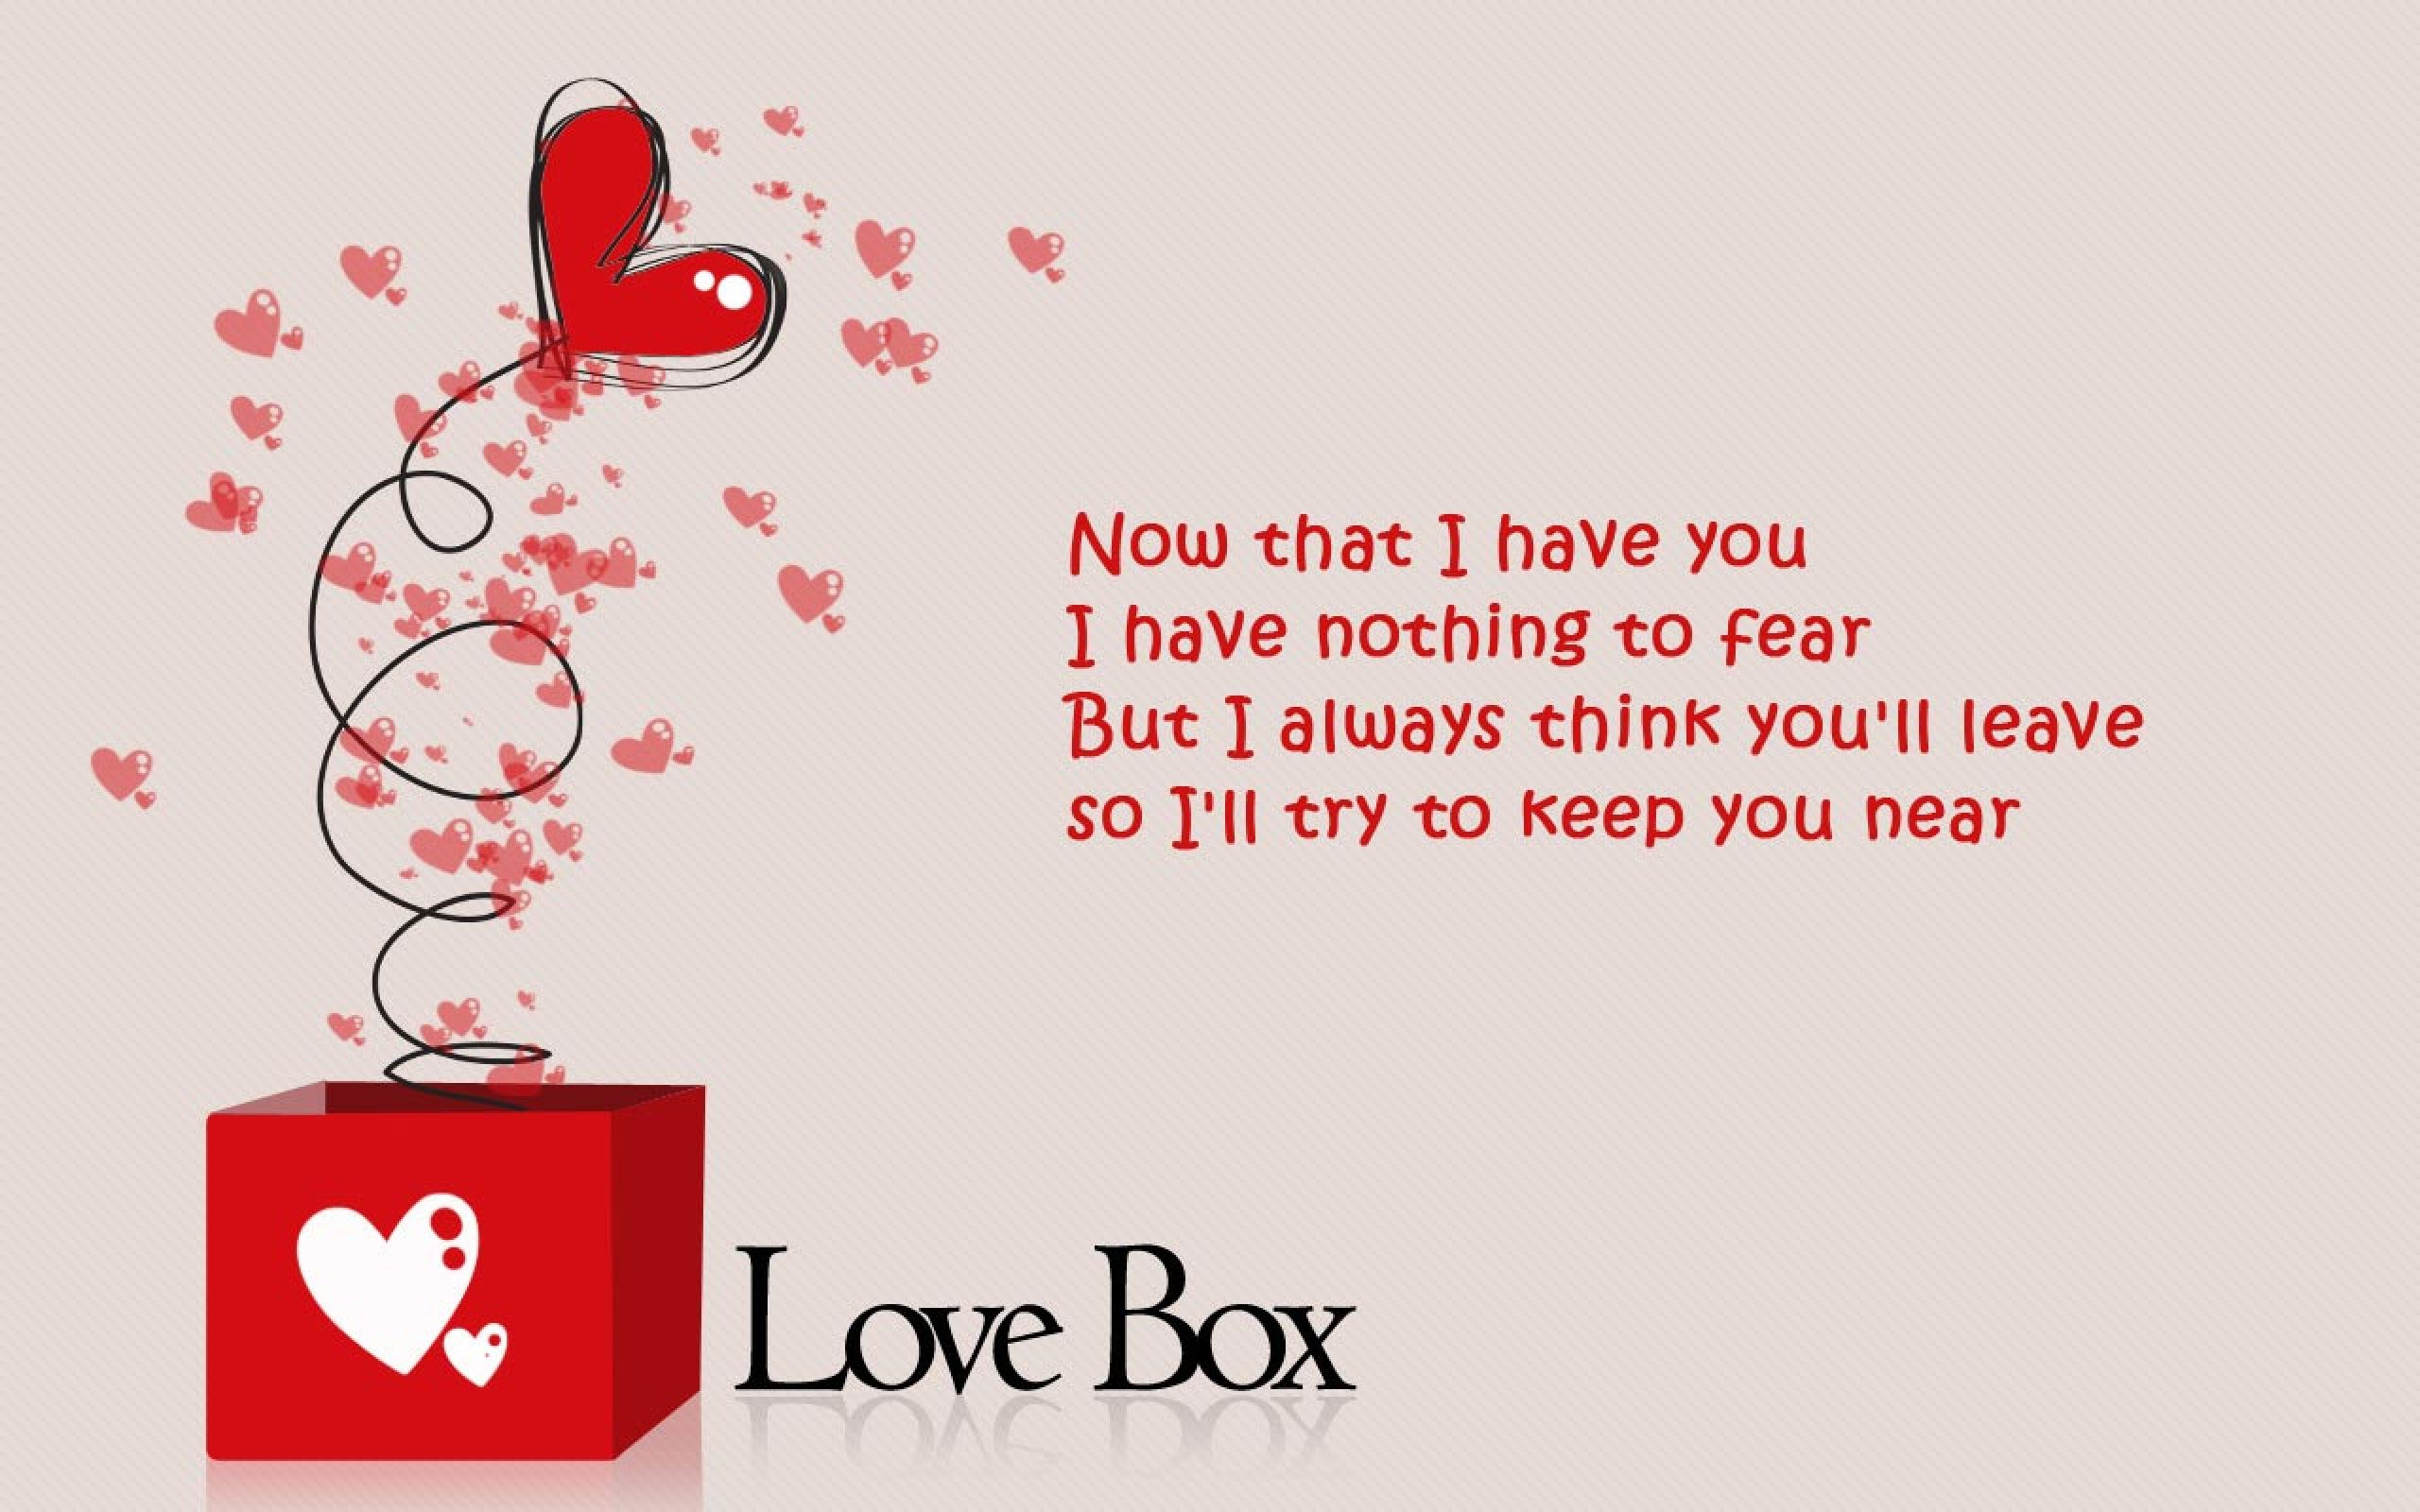 valentines day poems - wallpaper, high definition, high quality, Ideas